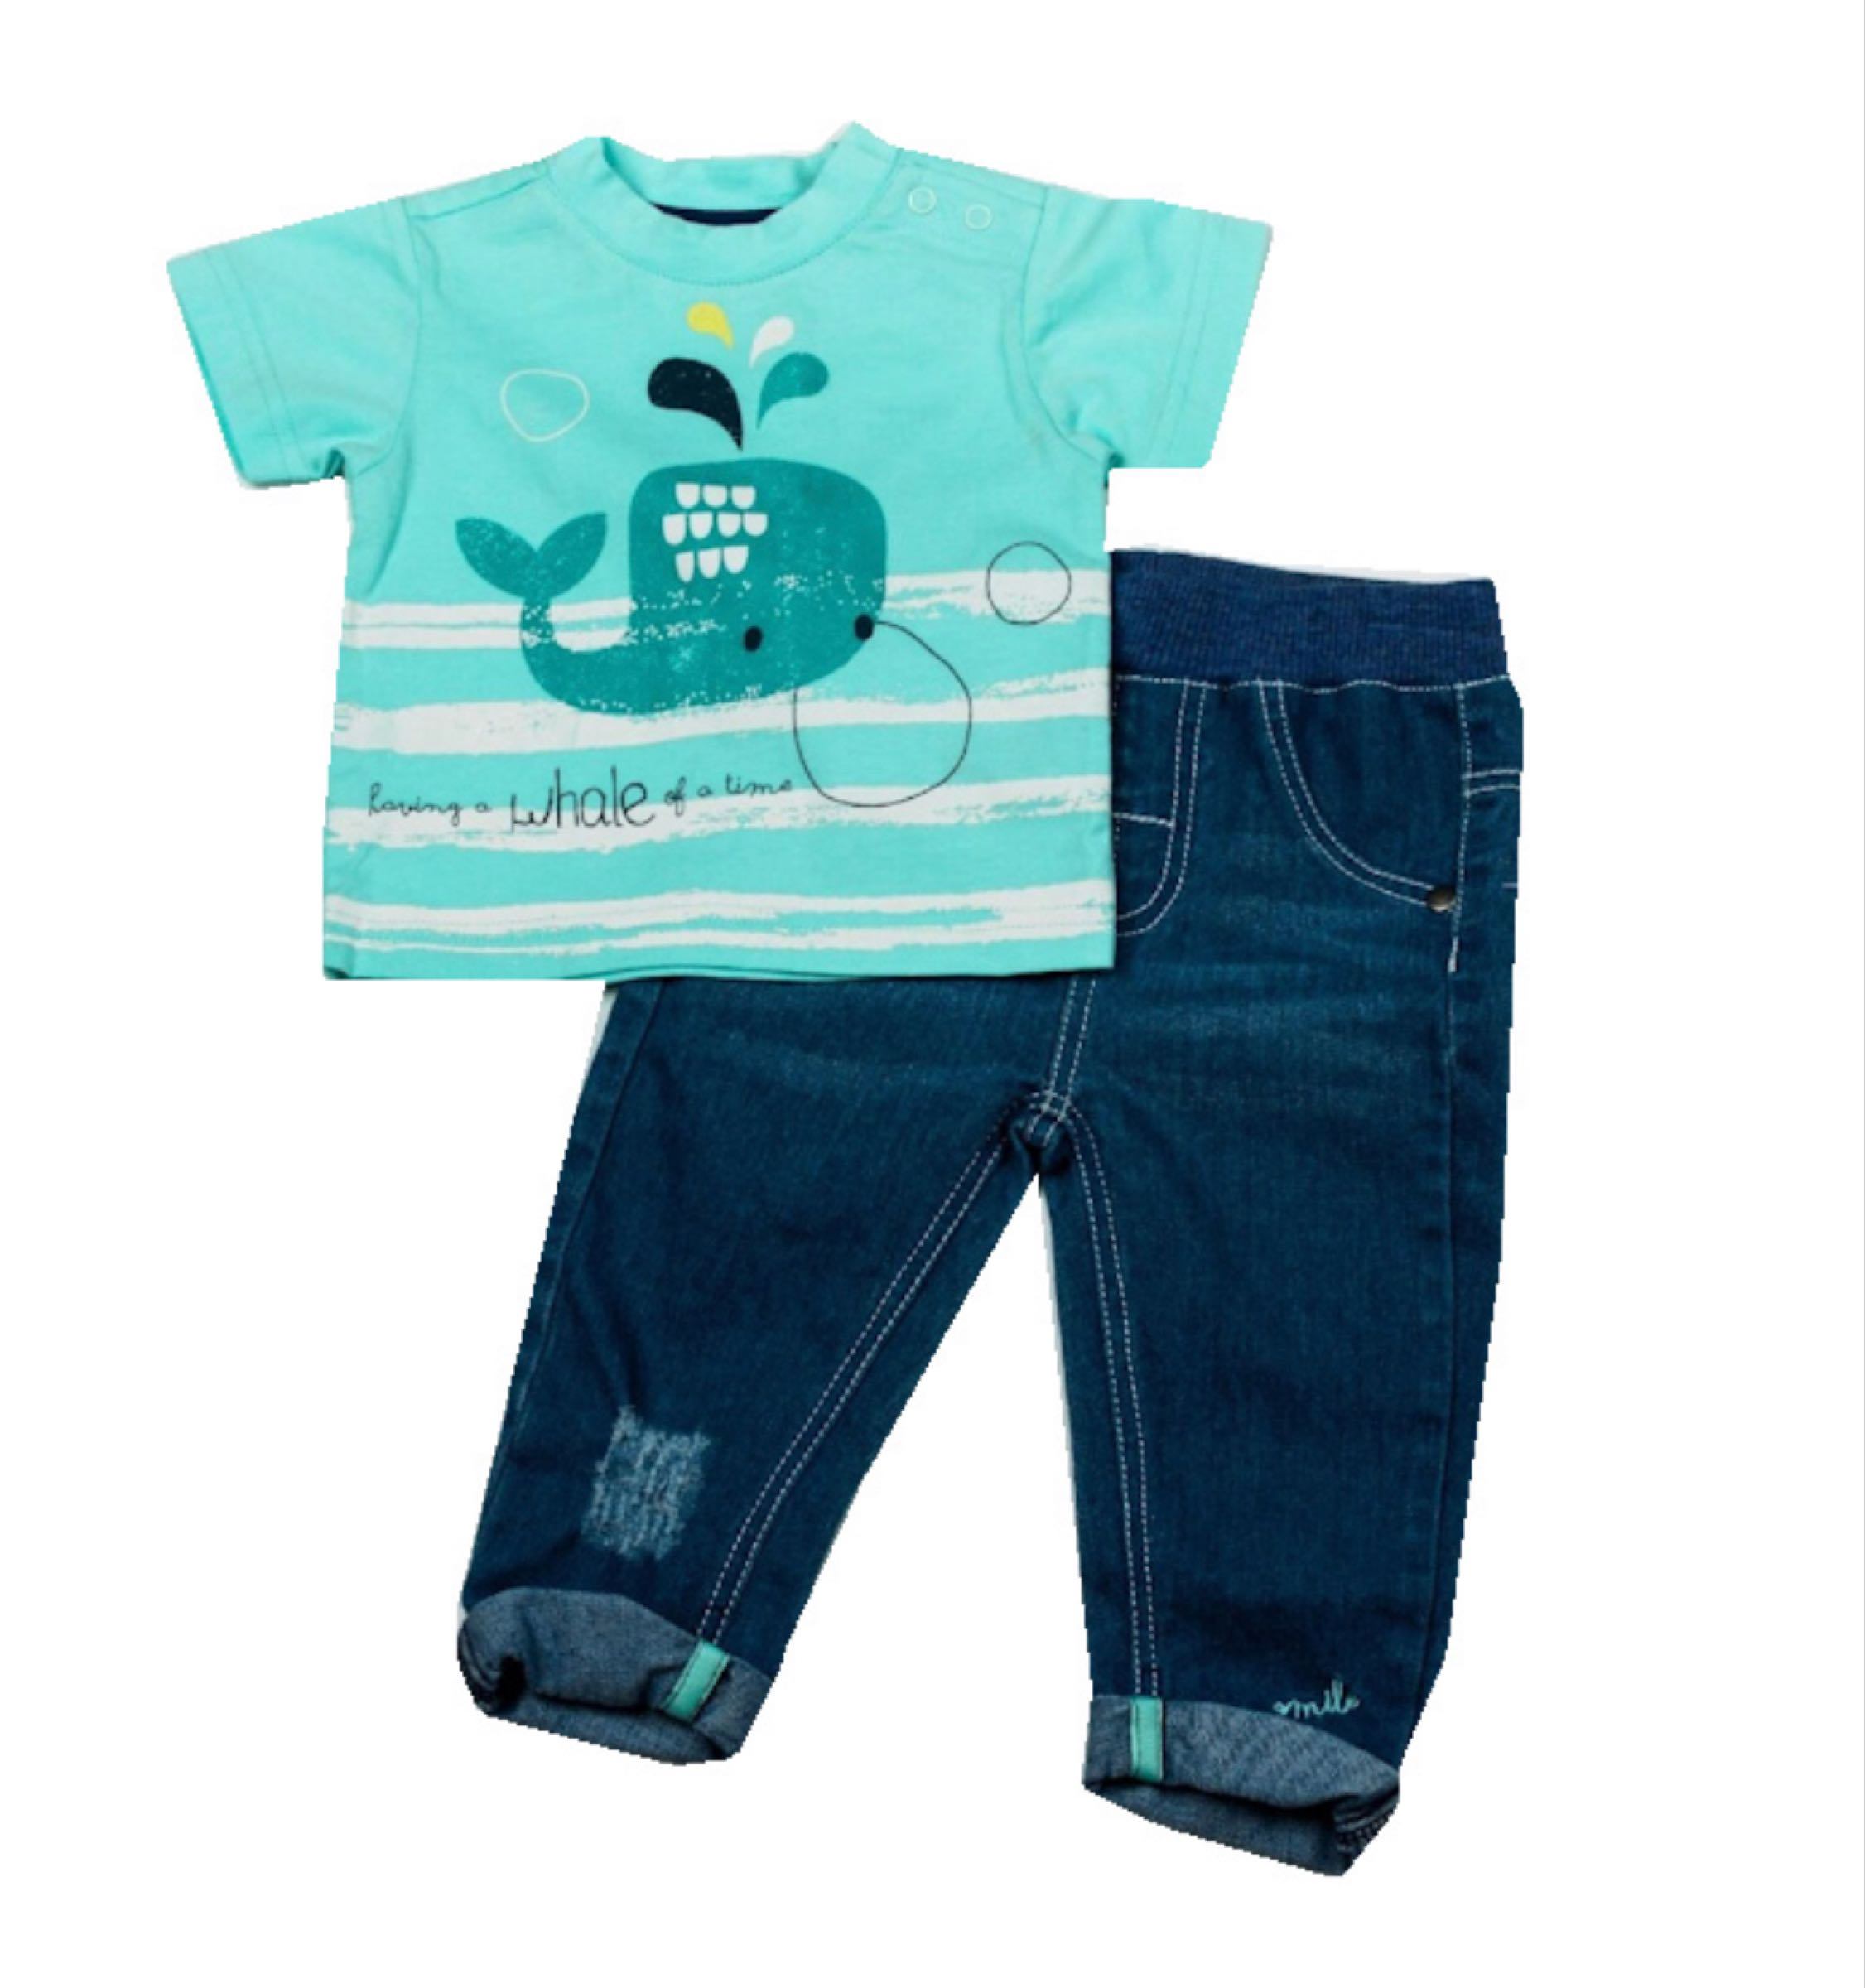 Whale  t shirt and jeans set